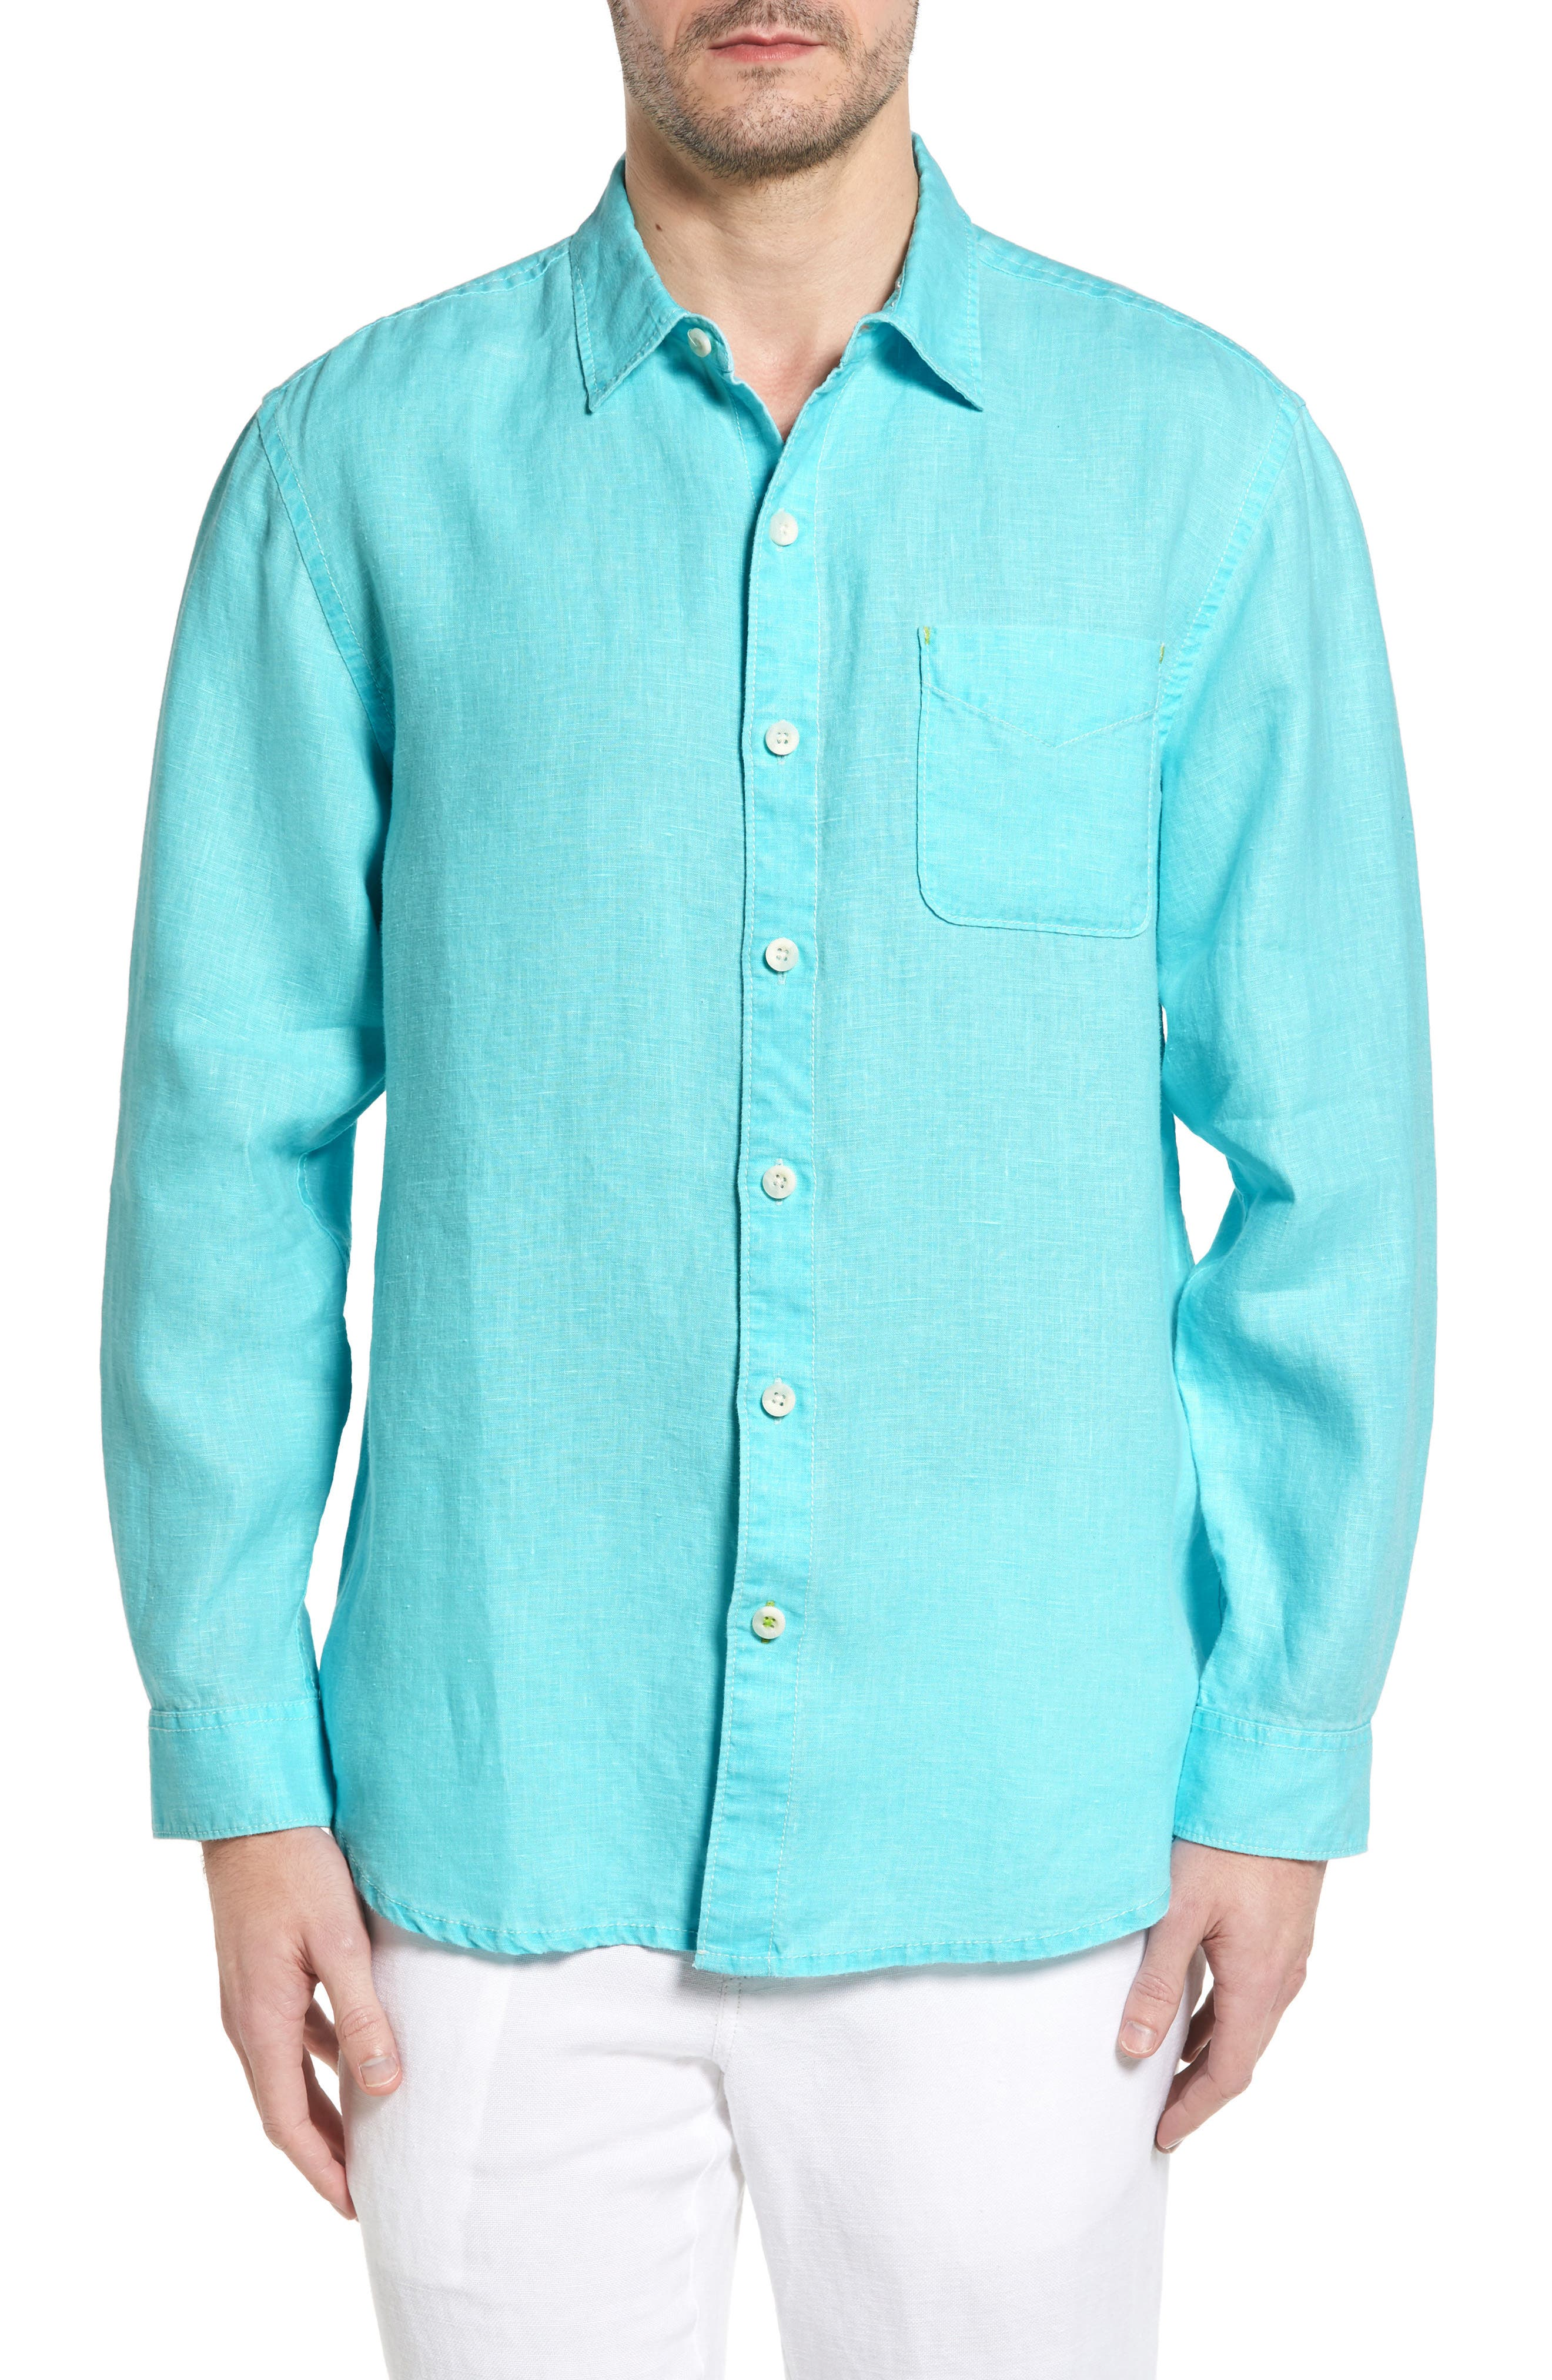 Main Image - Tommy Bahama 'Sea Glass Breezer' Original Fit Linen Shirt